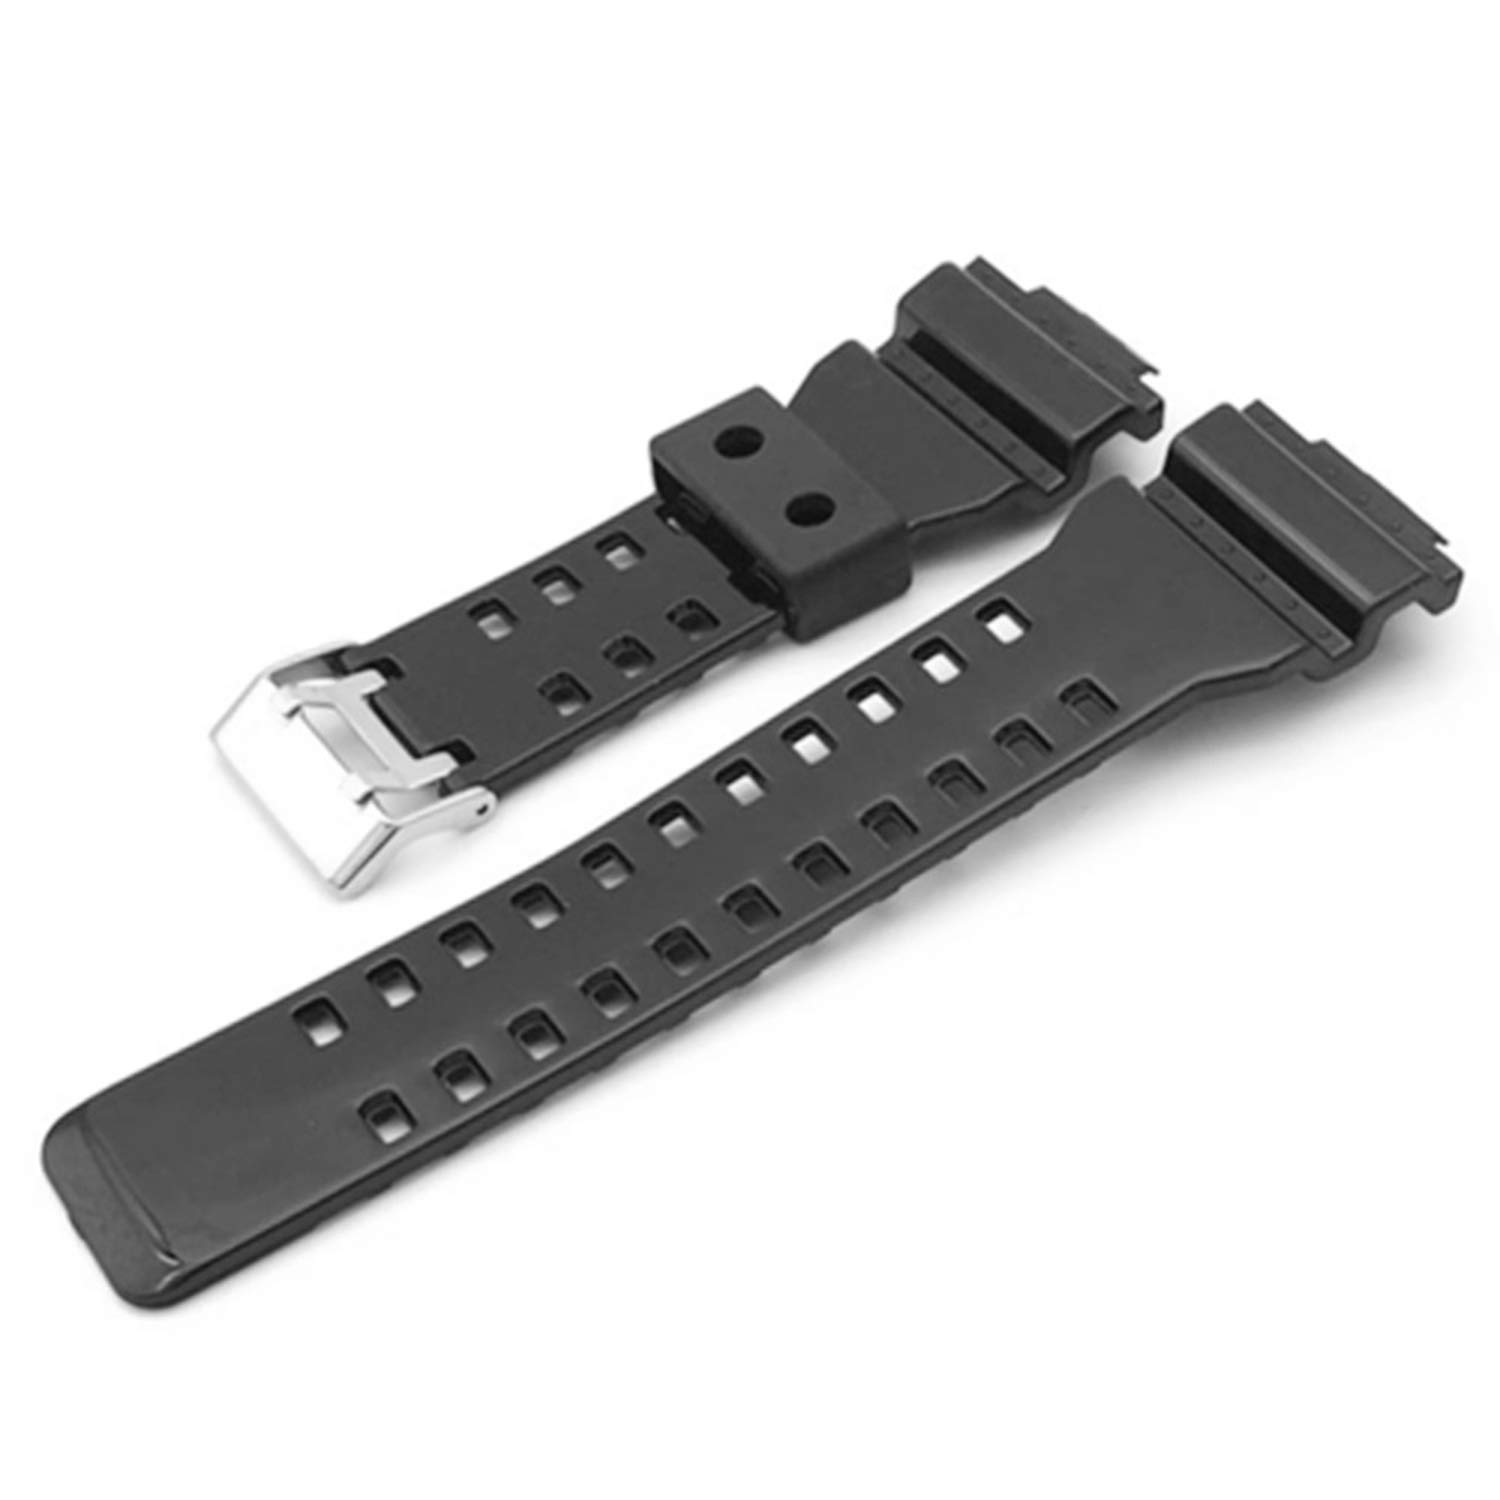 FairytaleMM Replace Watch Band for G-Shock 8900